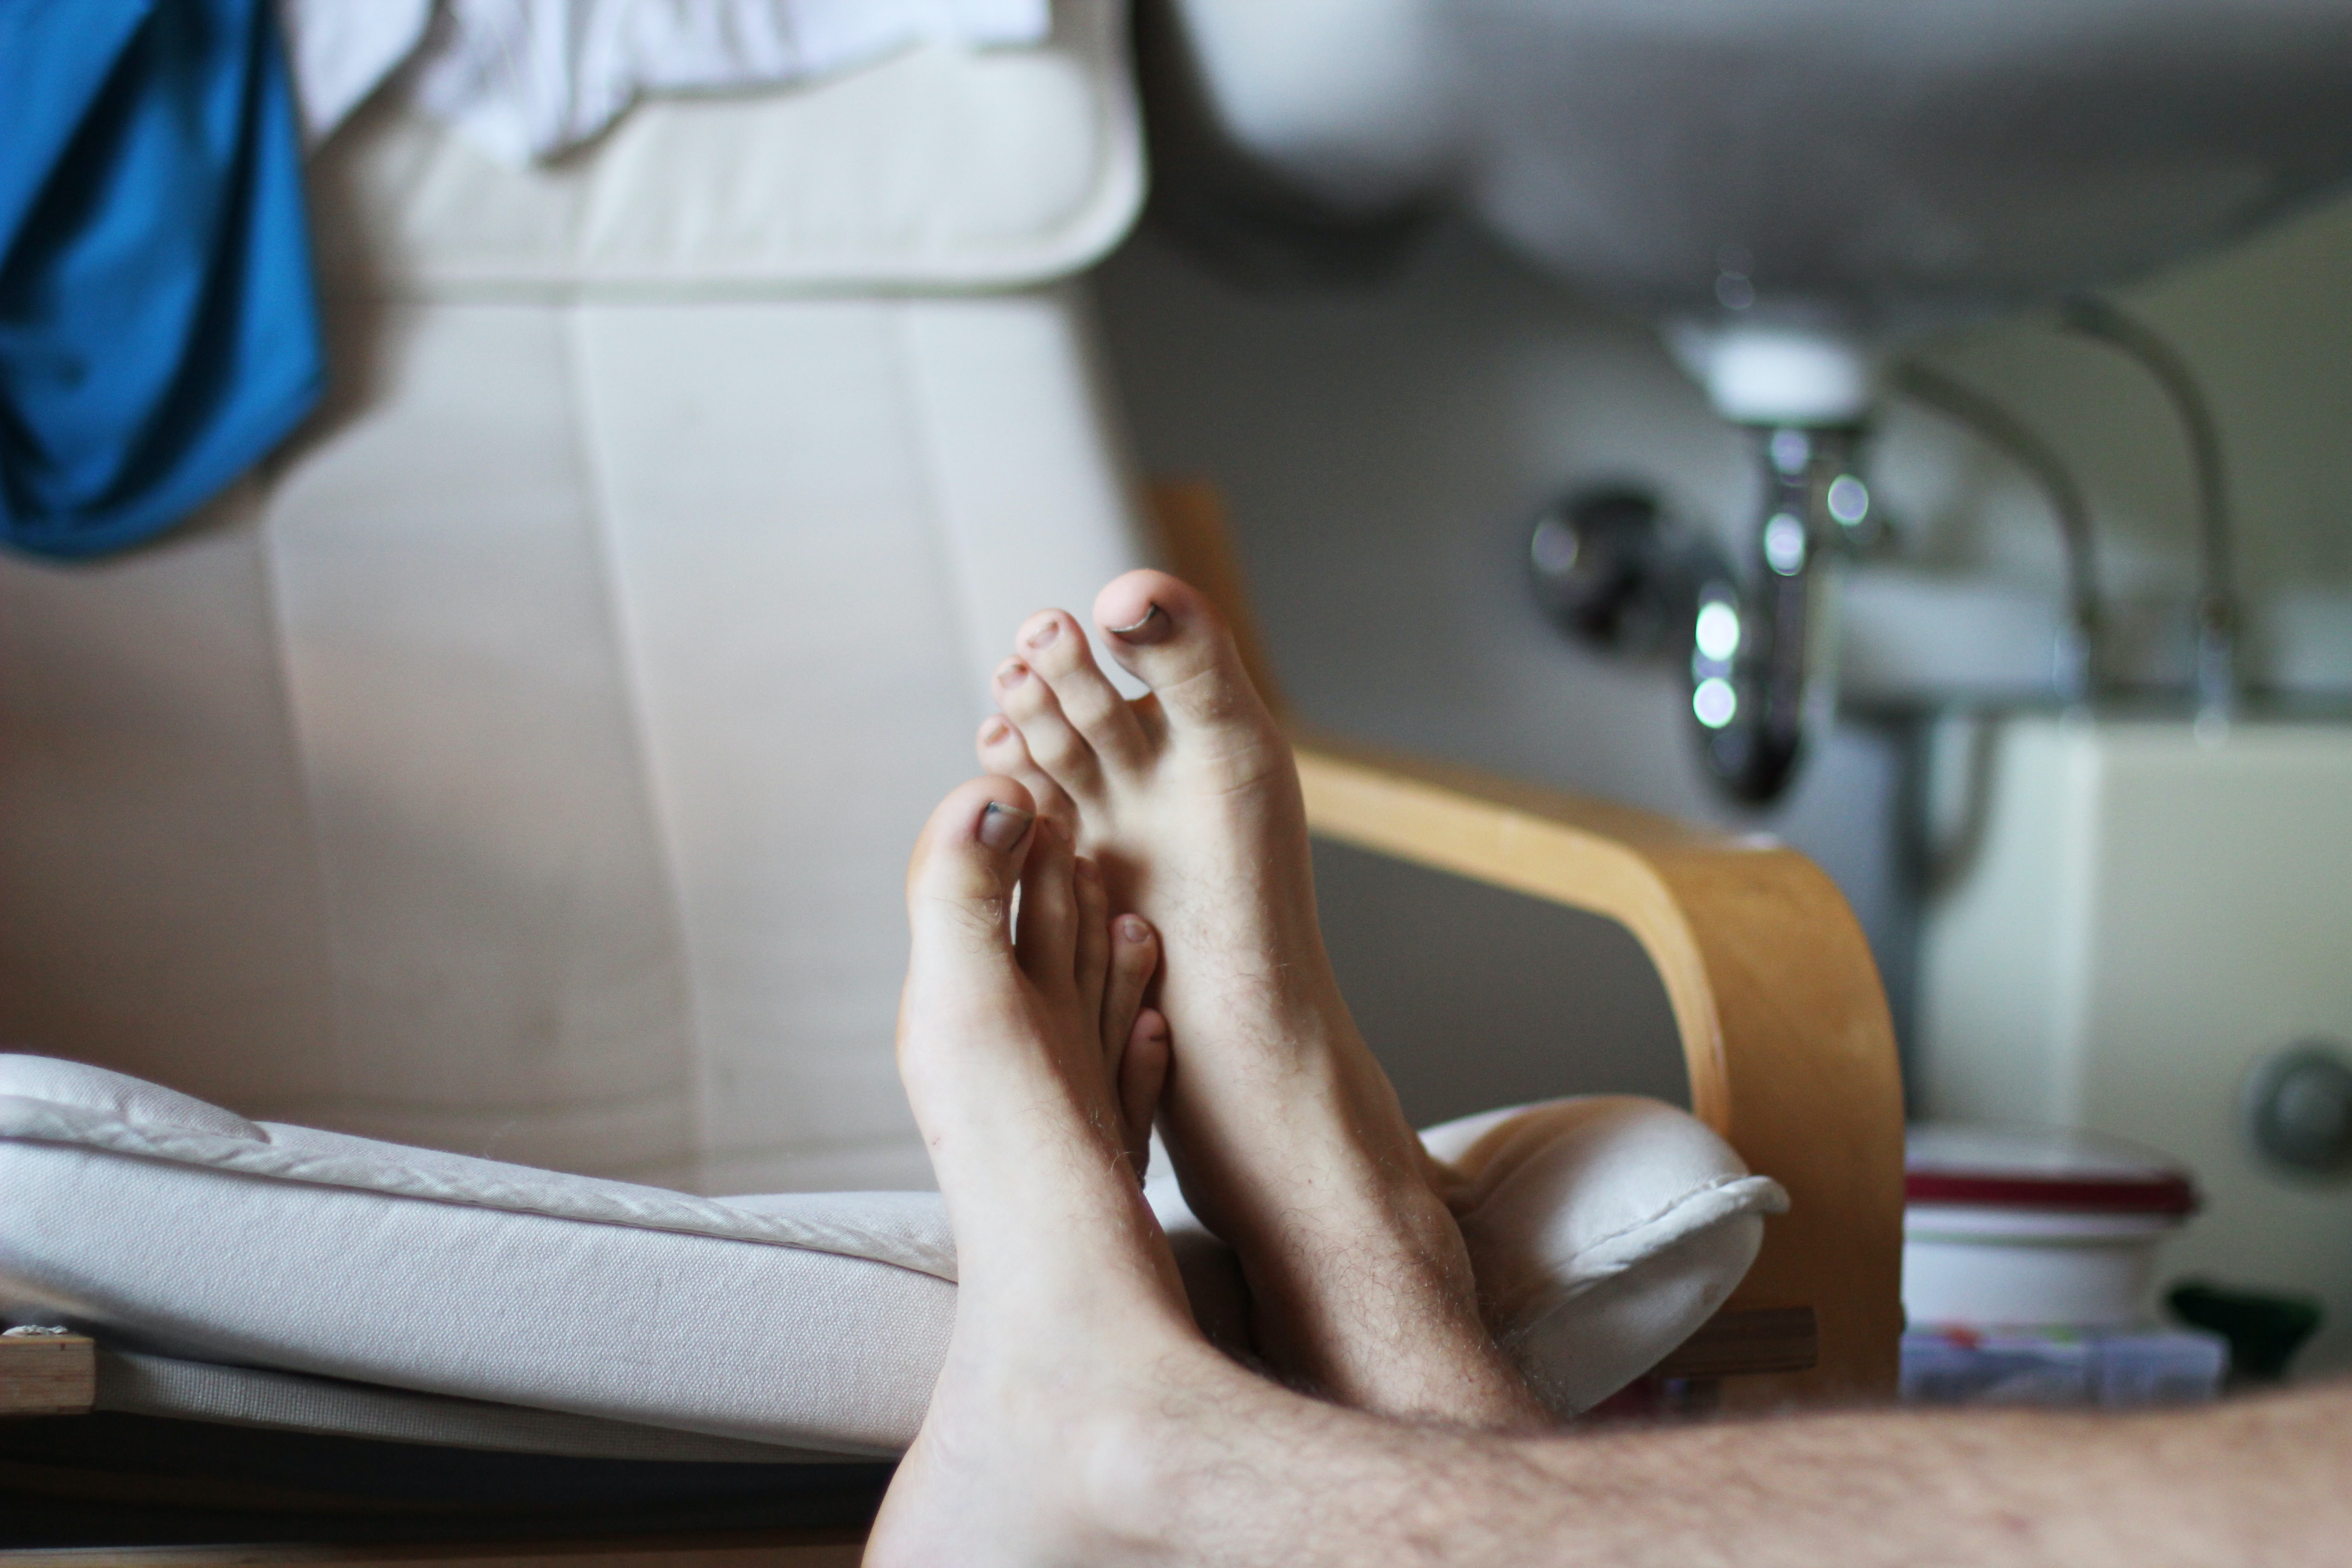 persons foot near glider chair